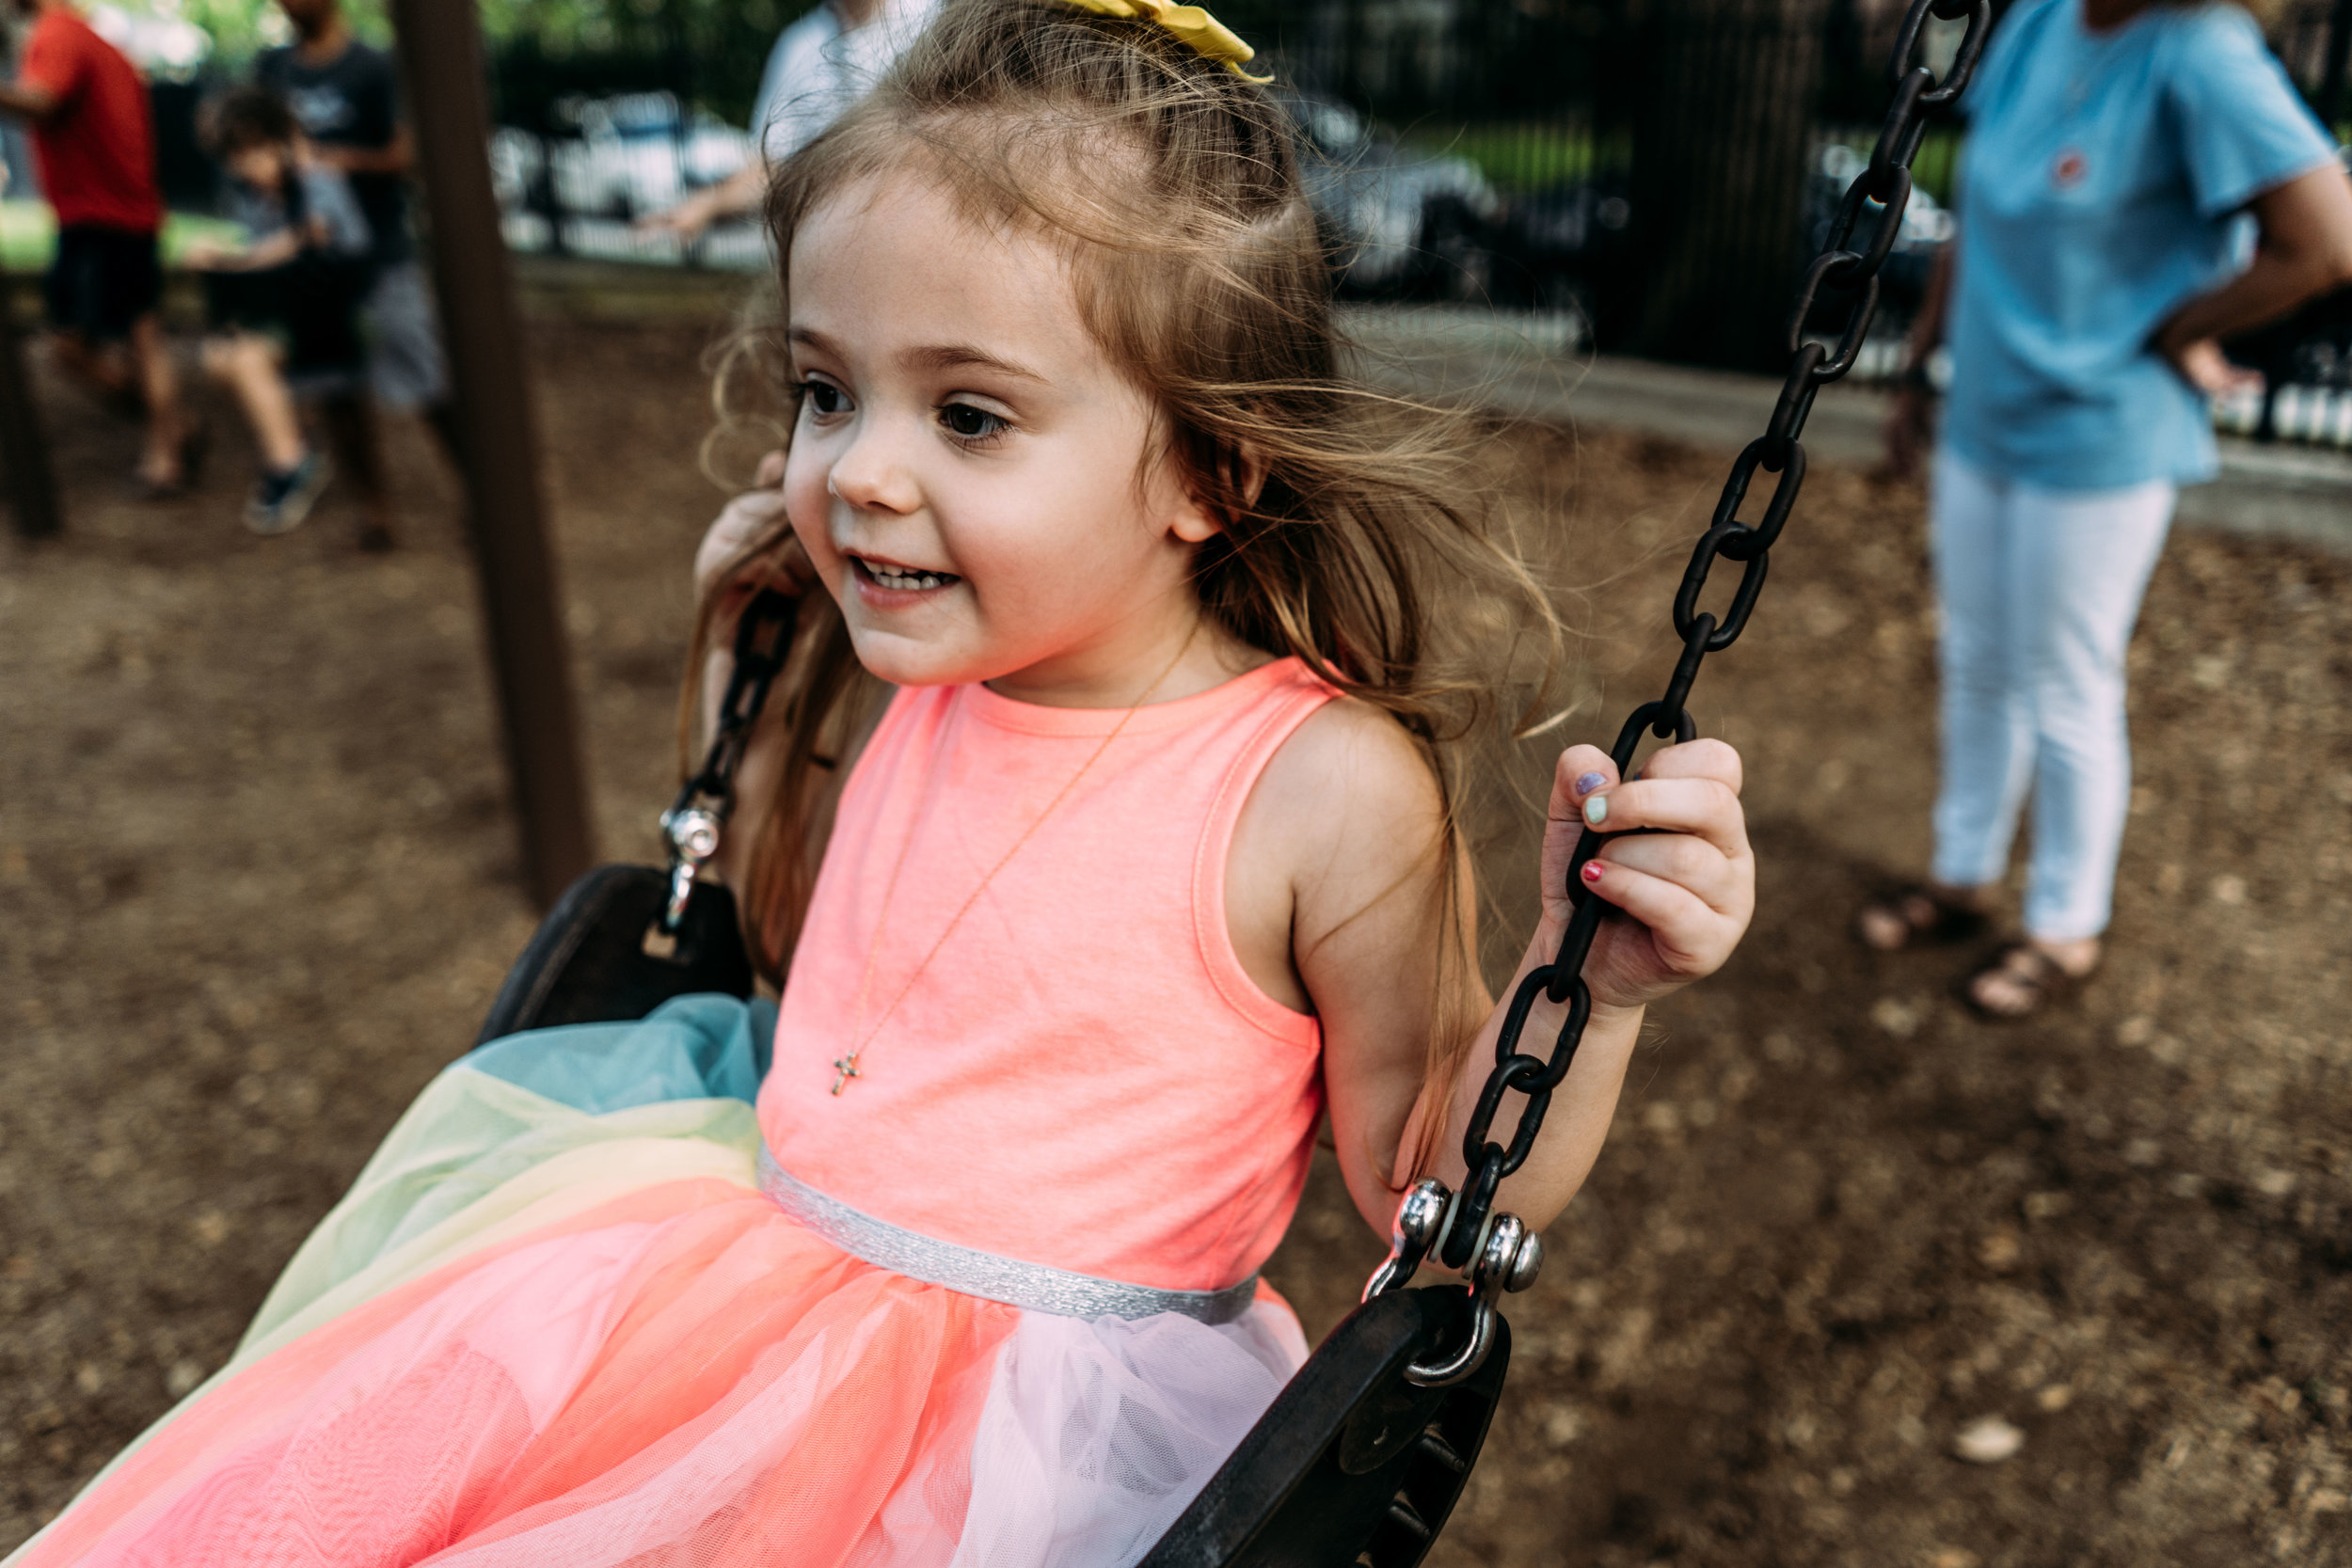 birthday party at the park-8.jpg